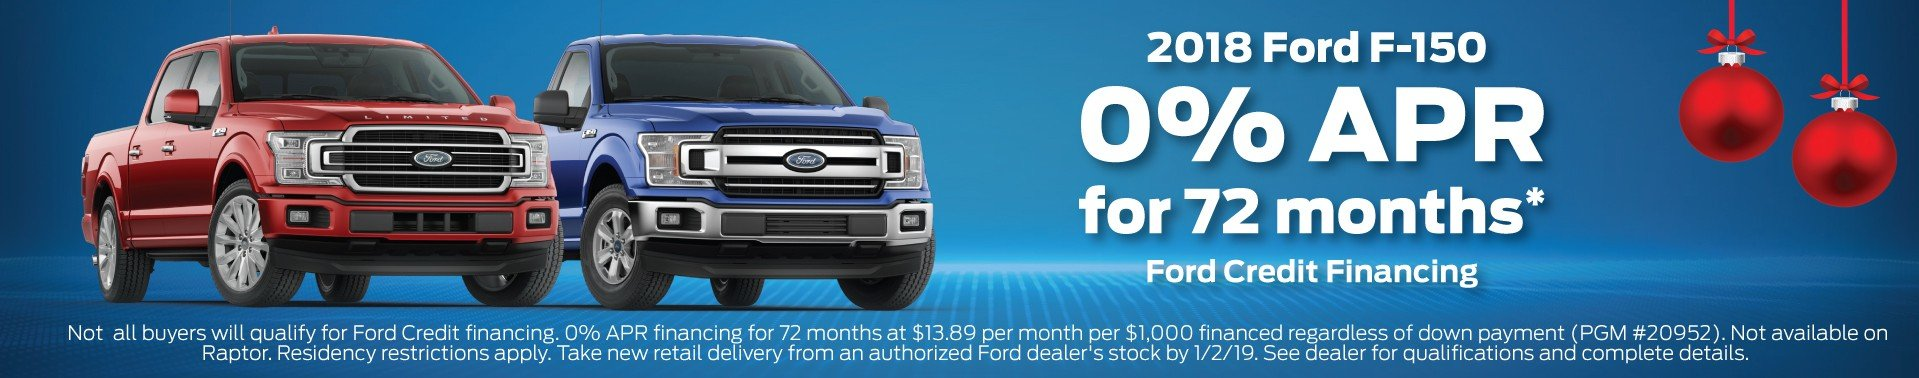 Ford F150 Finance Offer